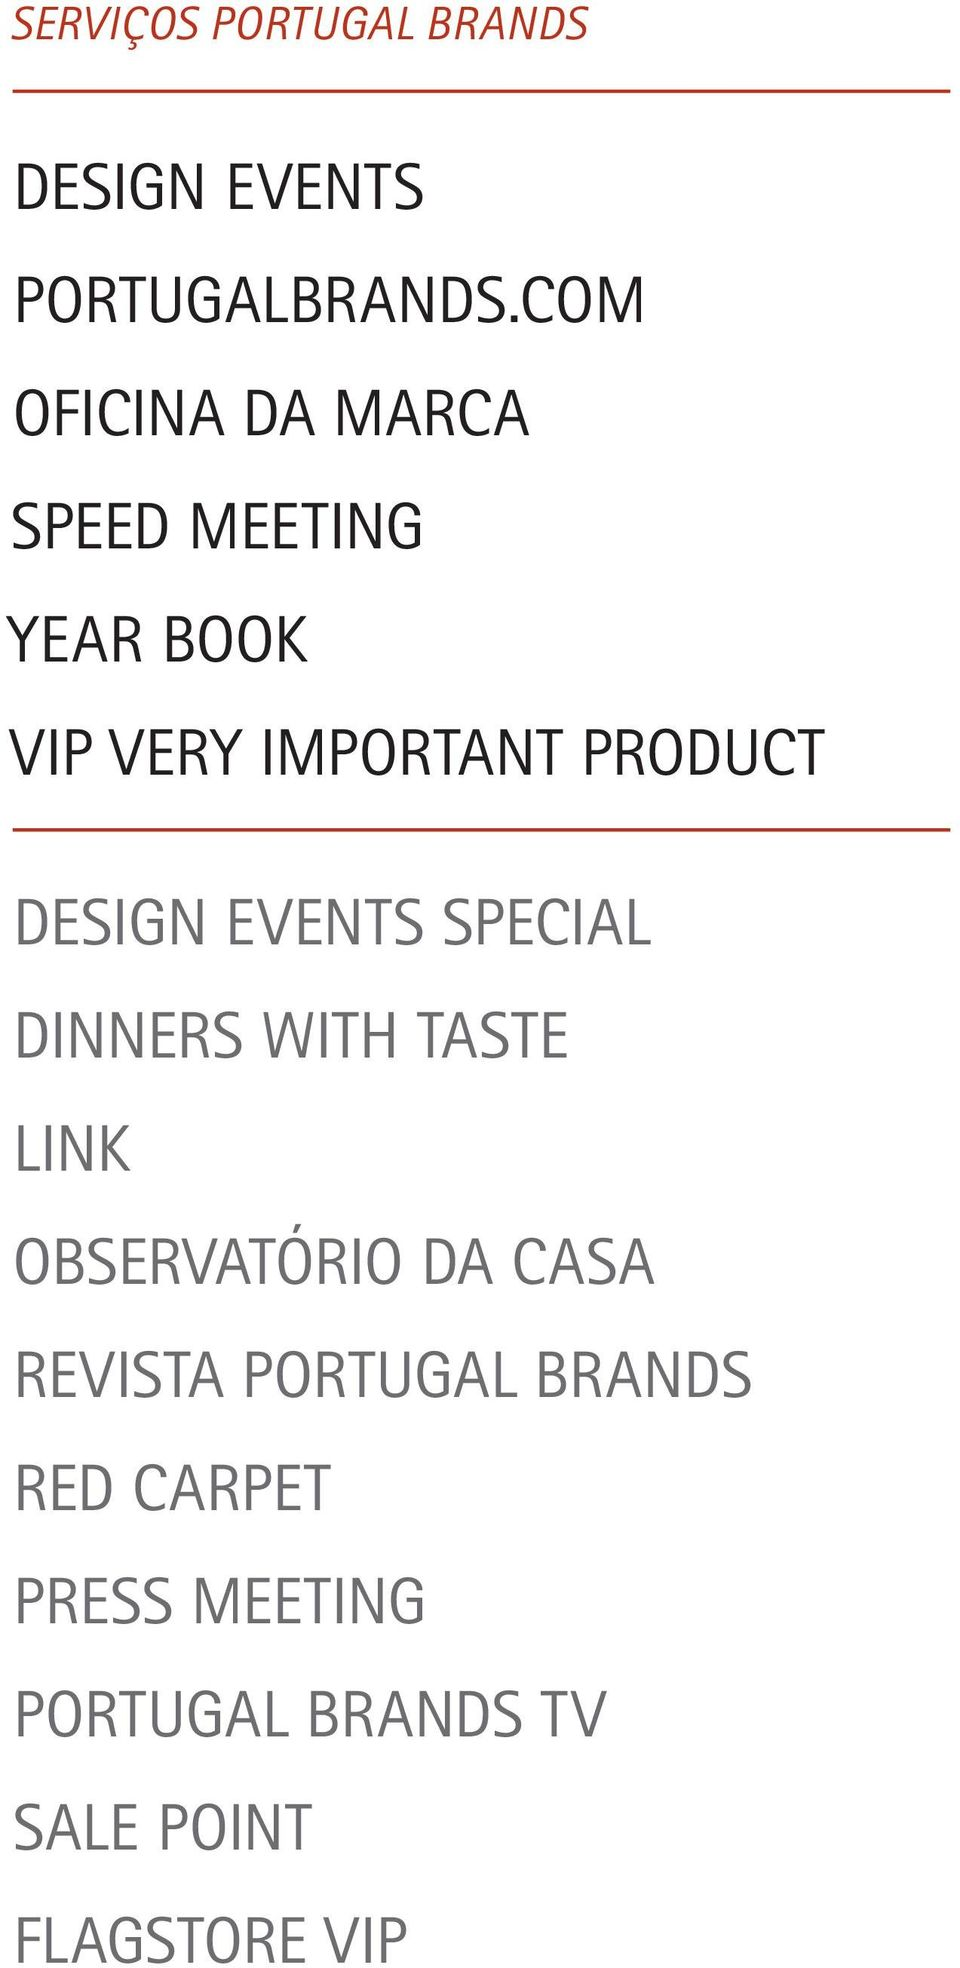 DESIGN EVENTS SPECIAL DINNERS WITH TASTE LINK OBSERVATÓRIO DA CASA